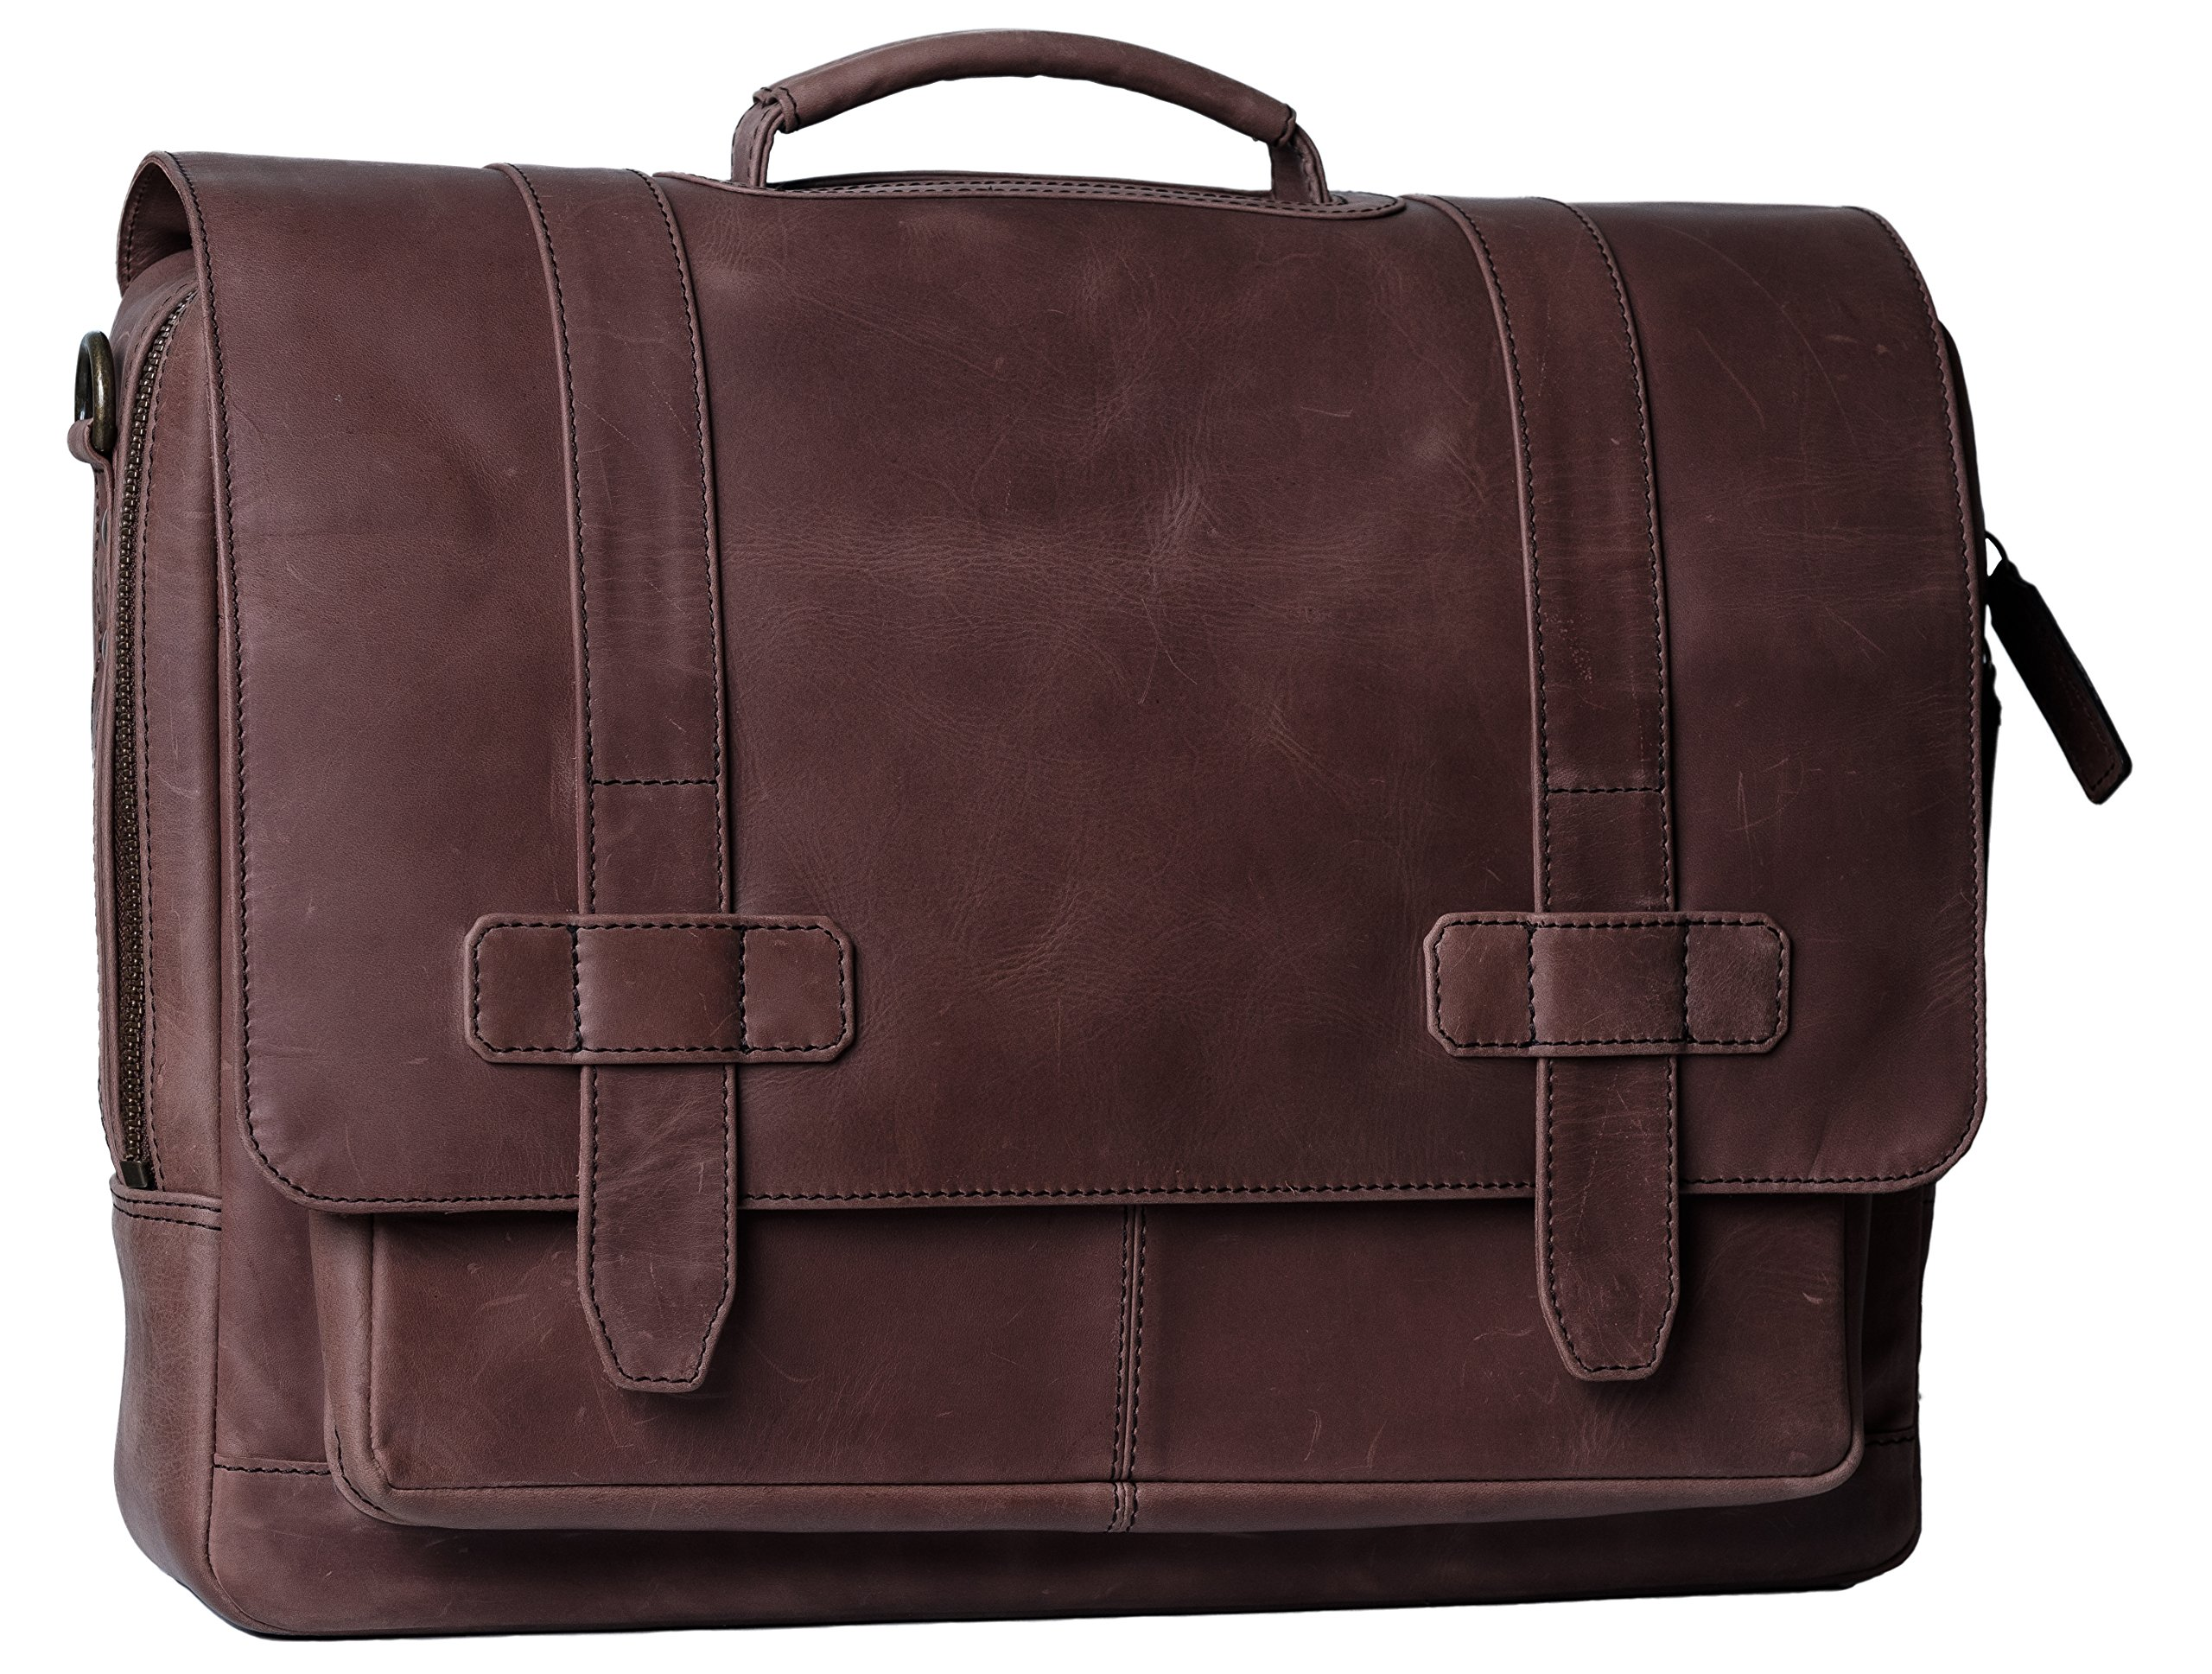 Genuine Leather Messenger Laptop Bag/Briefcase for Men, LOGAN, fits 15.4 inch Laptop, adjustable strap, 16 inch by 12 inch by 4 inch (Chestnut Brown) by Ladderback